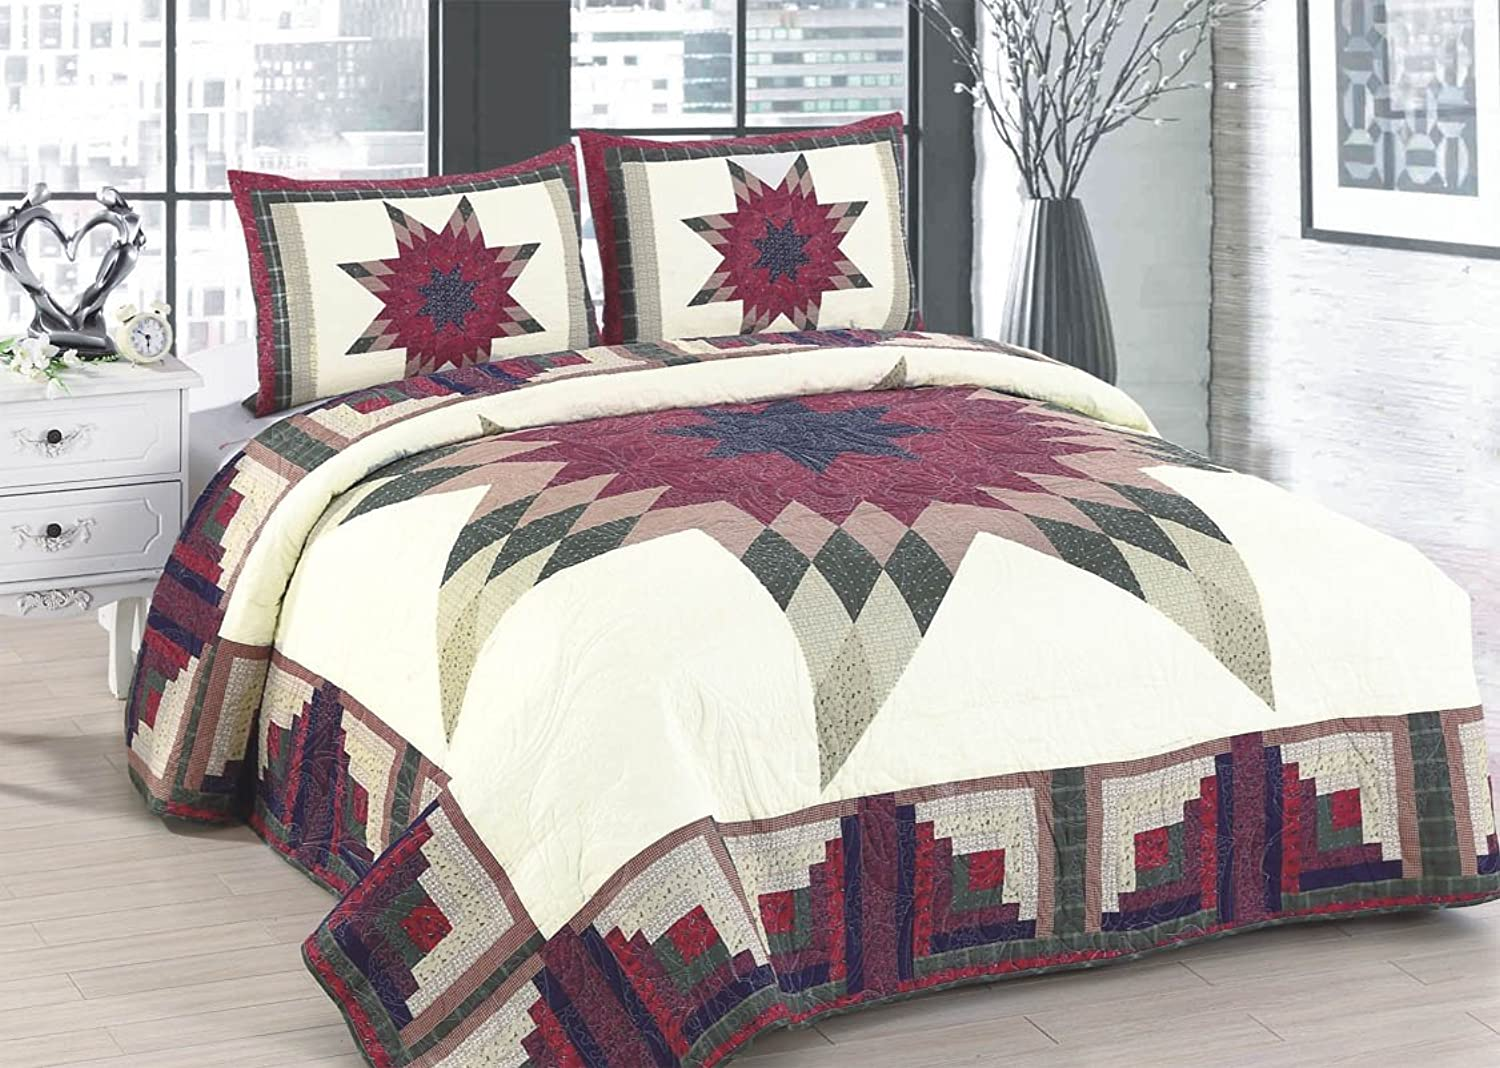 American Hometex Q16905-Q Cabin Star Quilt Set, Queen